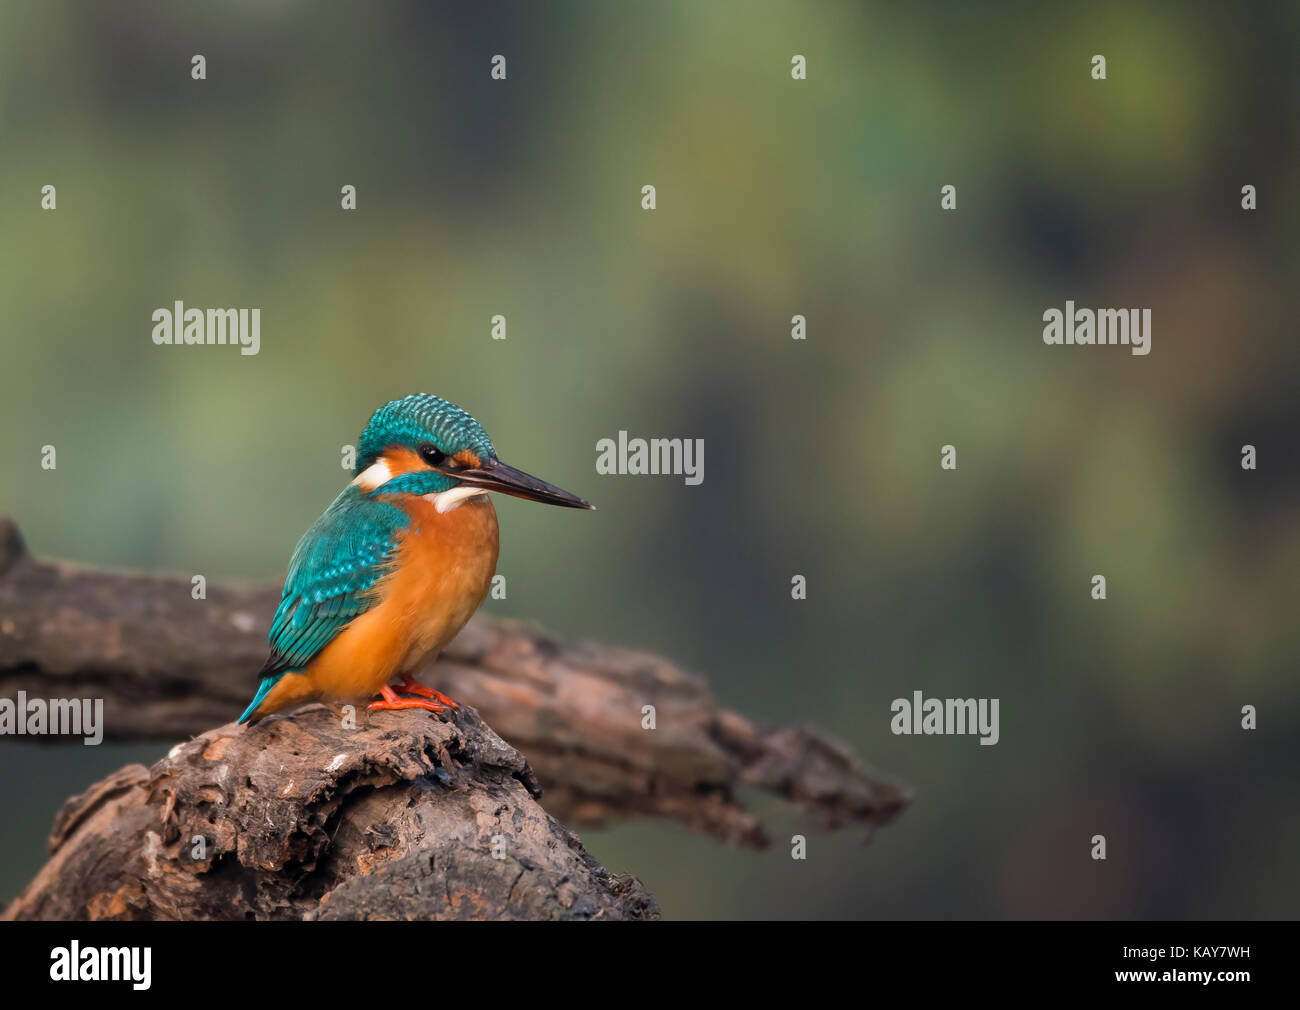 Common blue kingfisher sitting on a tree branch - Stock Image